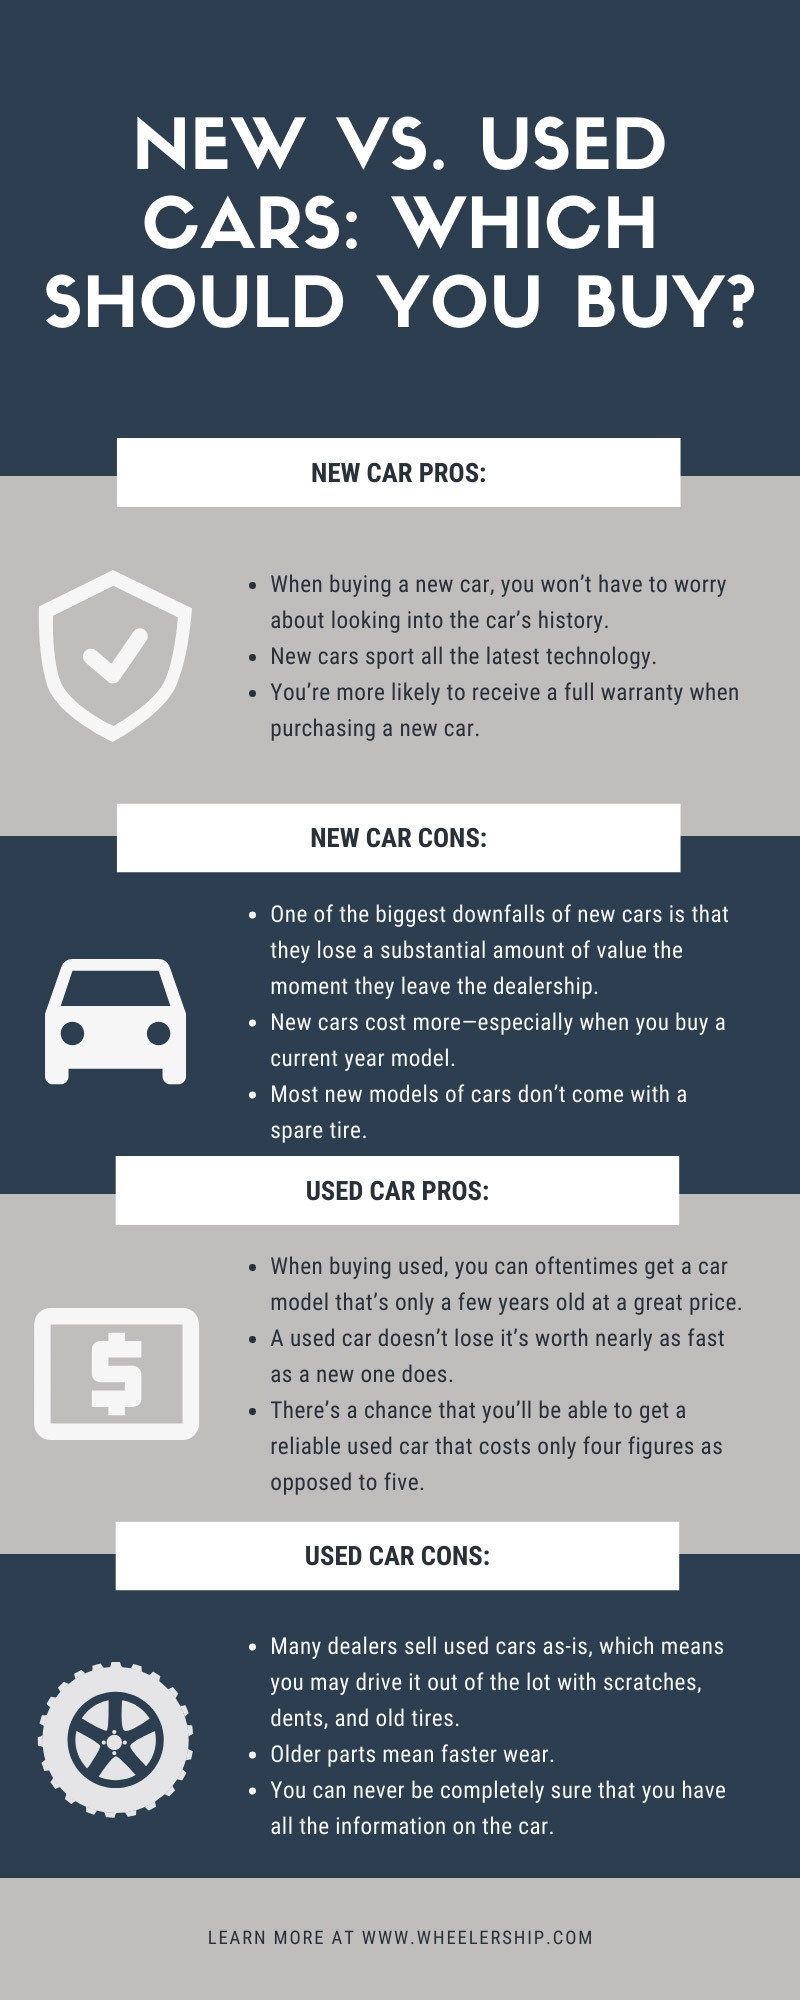 New vs. Used Cars: Which Should You Buy? infographic